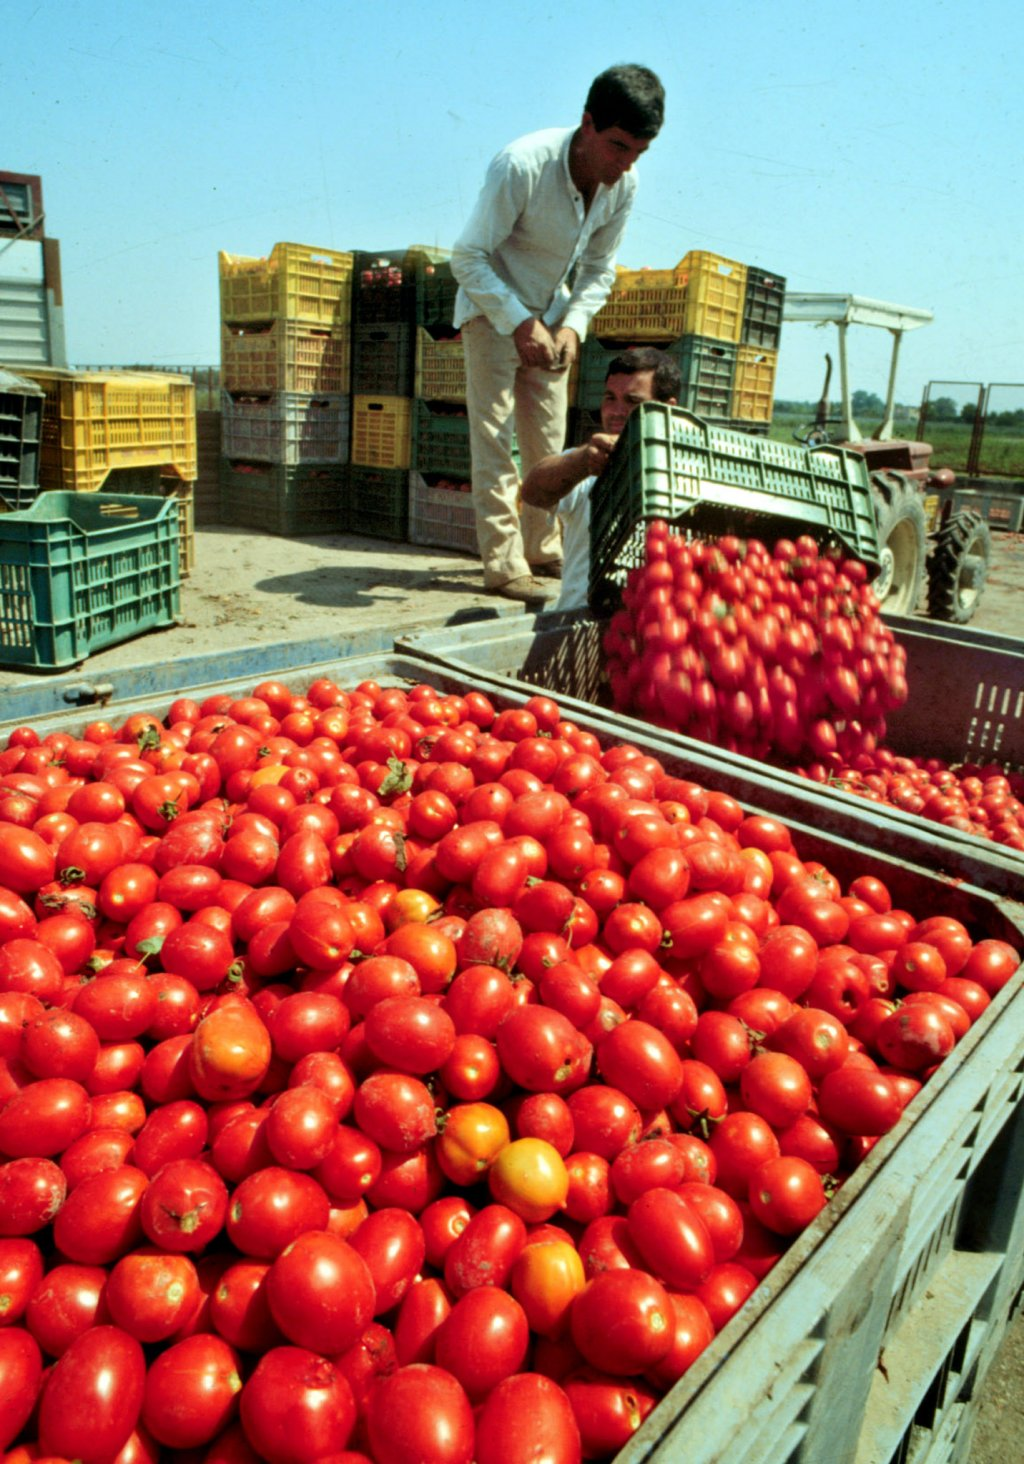 A migrant worker harvests tomatoes in Campania, Italy. Credit: CIRO FUSCO/ANSA